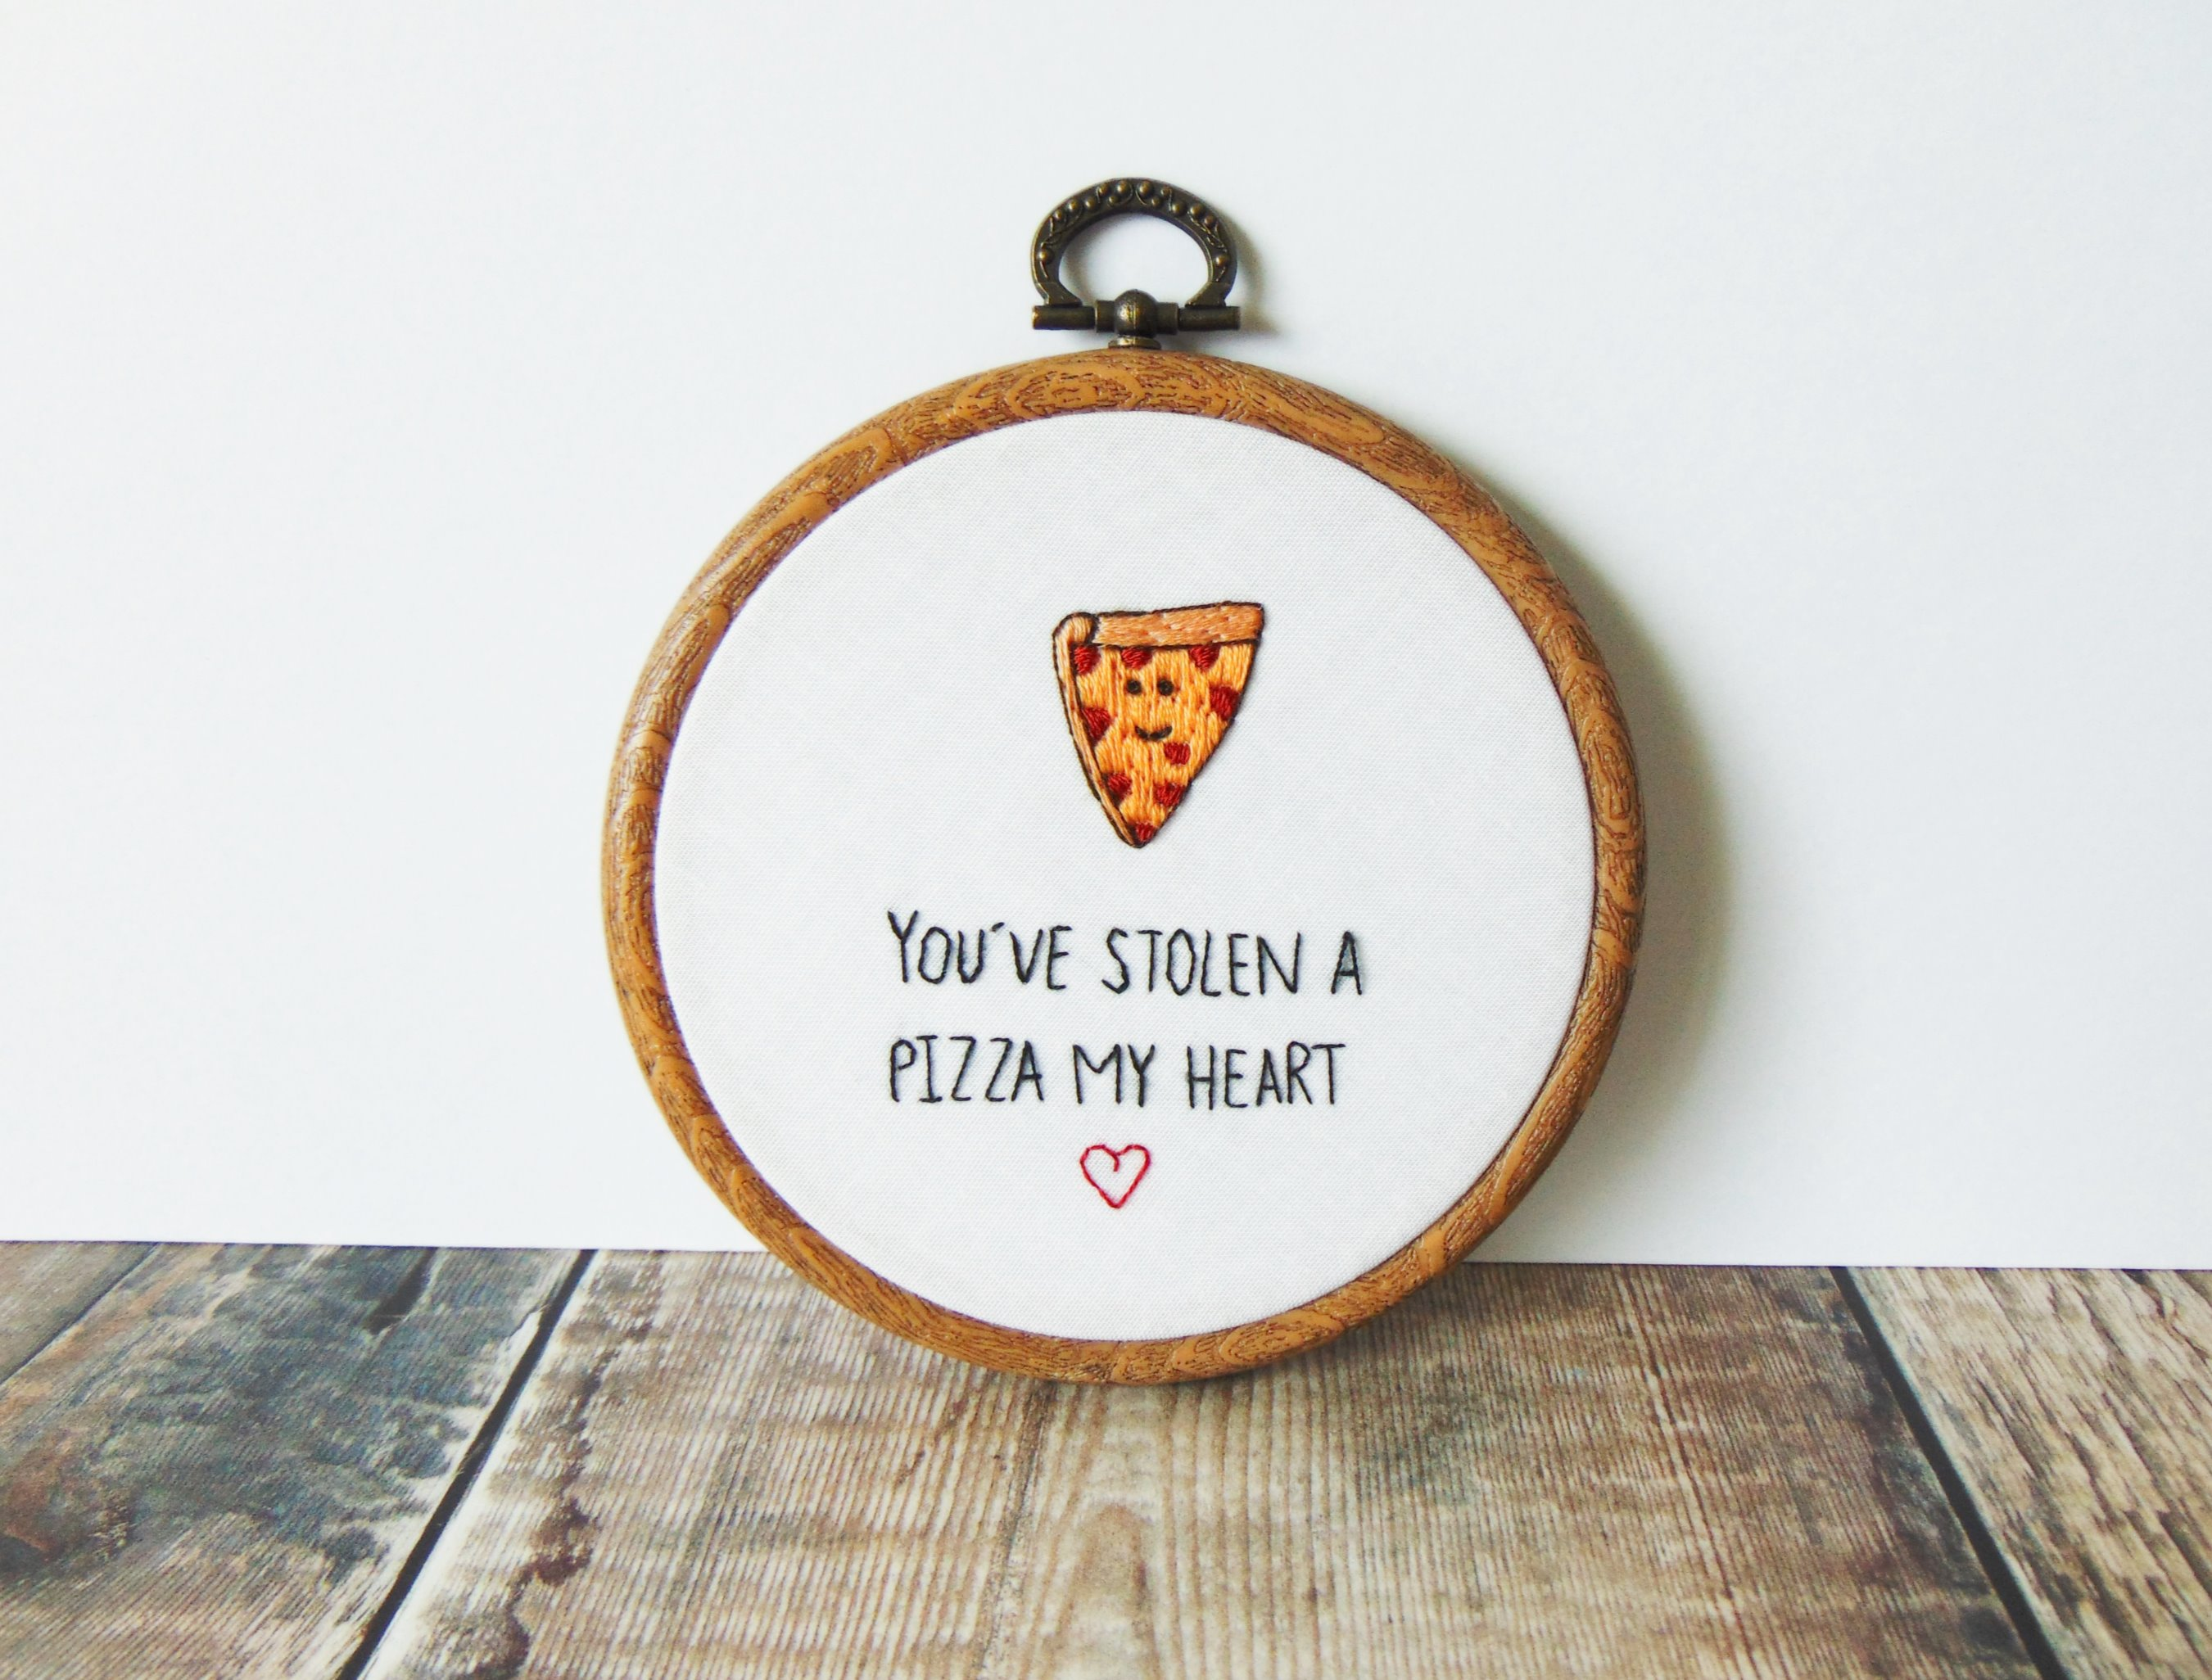 You've stolen a pizza my heart 1_edited.